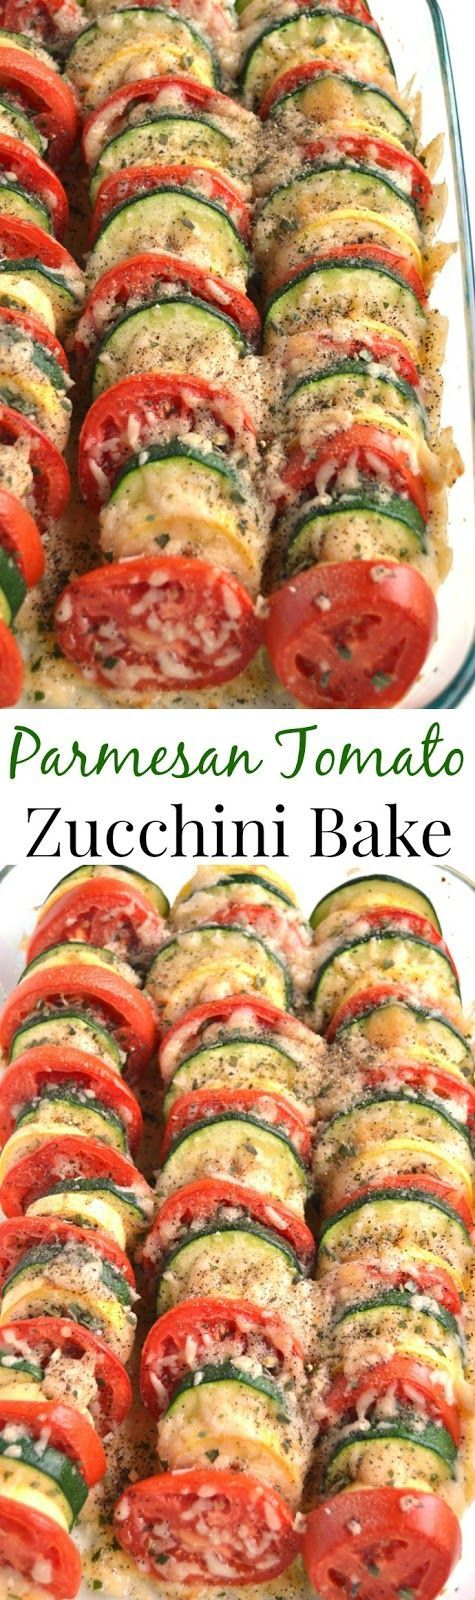 Parmesan Tomato Zucchini Bake is a simple recipe with layered fresh tomatoes, zucchini and summer squash topped with garlic, onions and parmesan cheese! www.nutritionistreviews.com